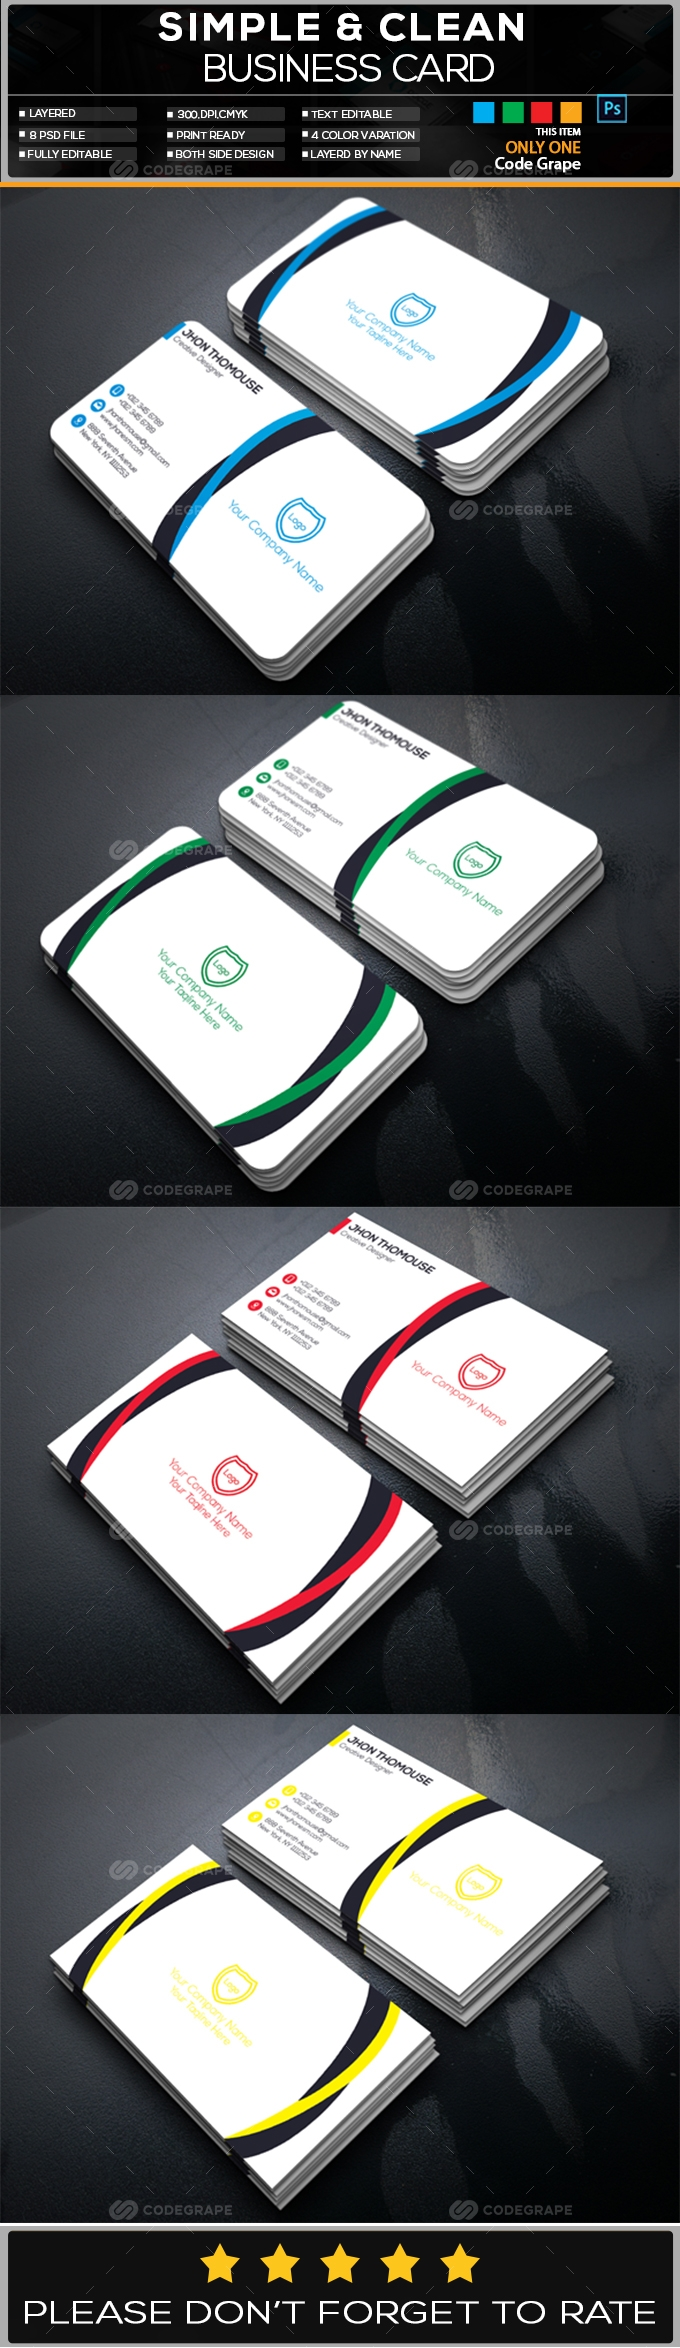 Creative Business Card Vol - 11